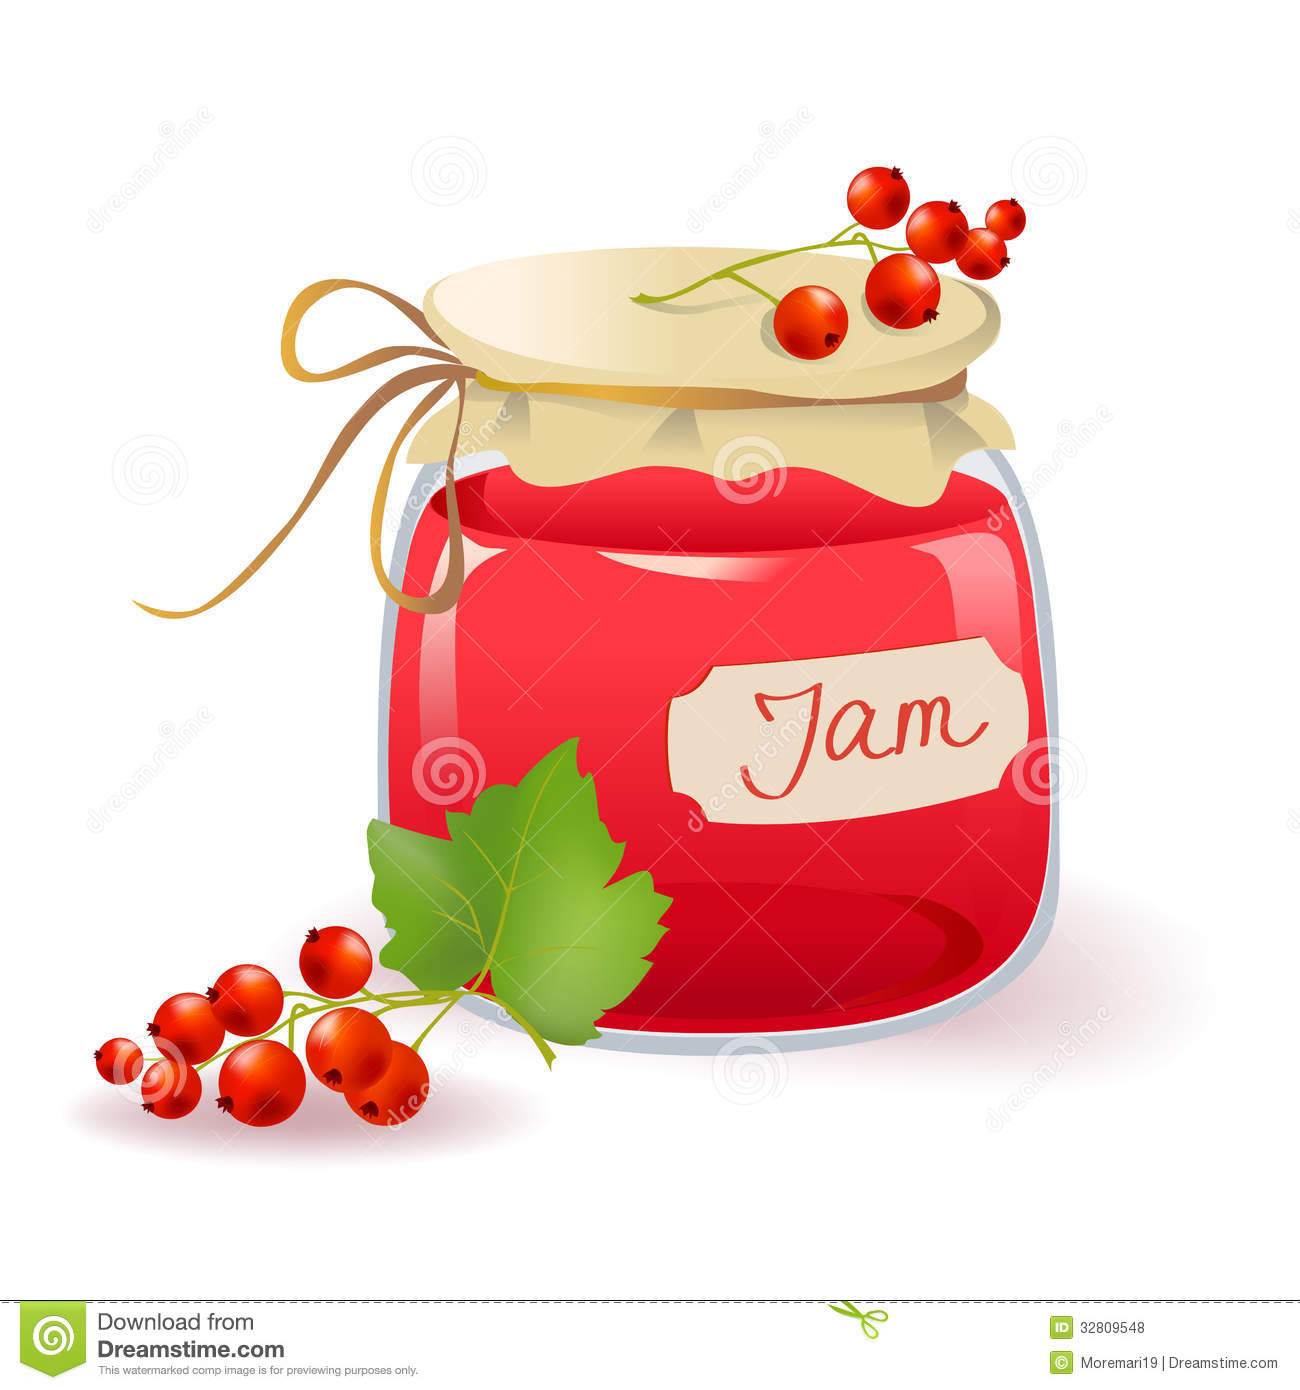 Red Currant Jam Royalty Free Stock Photos - Image: 32809548